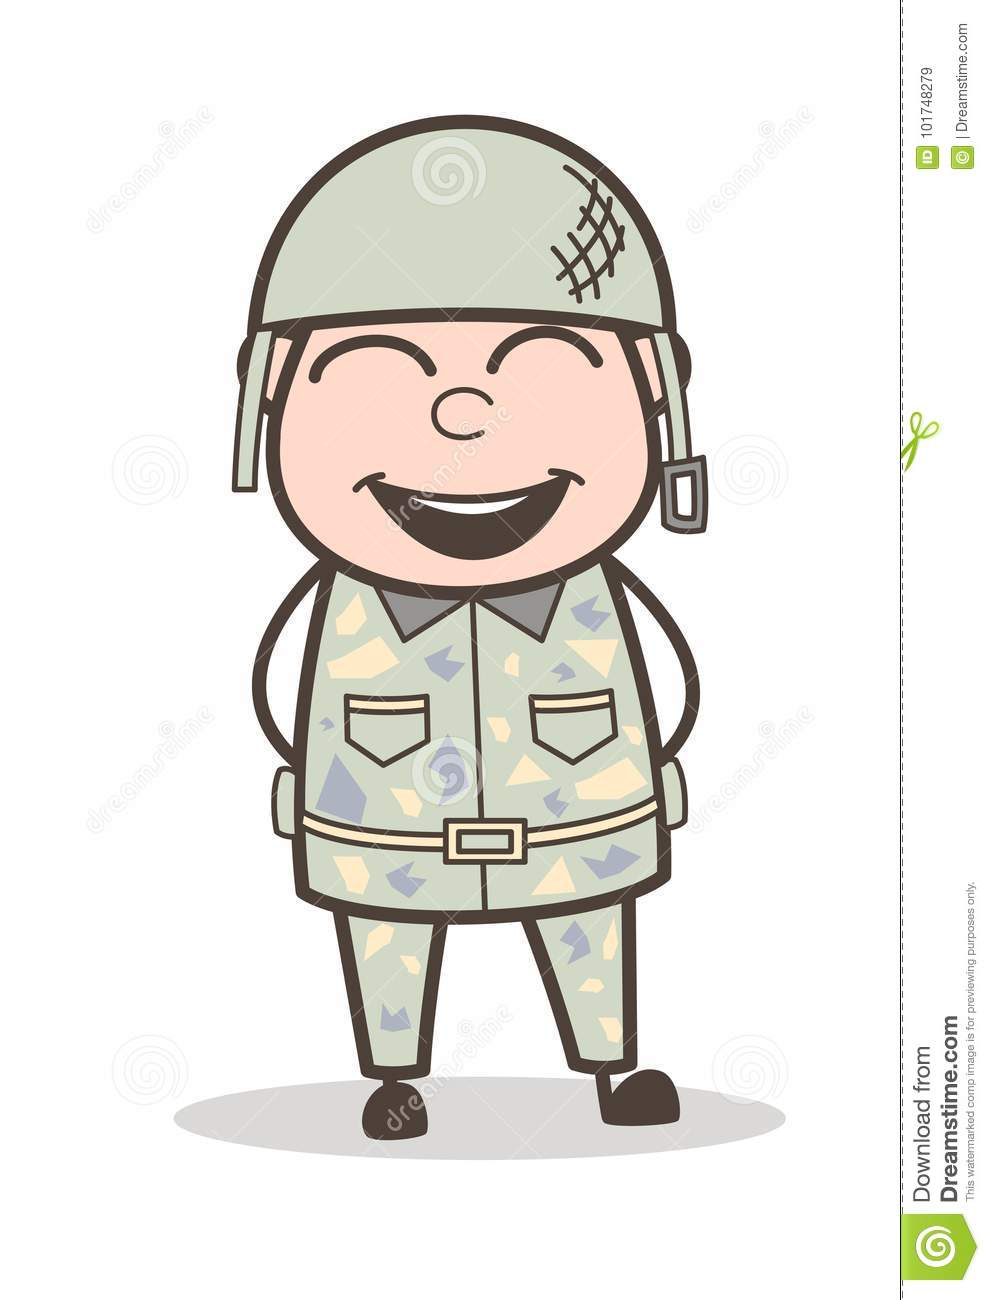 Image result for Cartoon smiling sergeant images